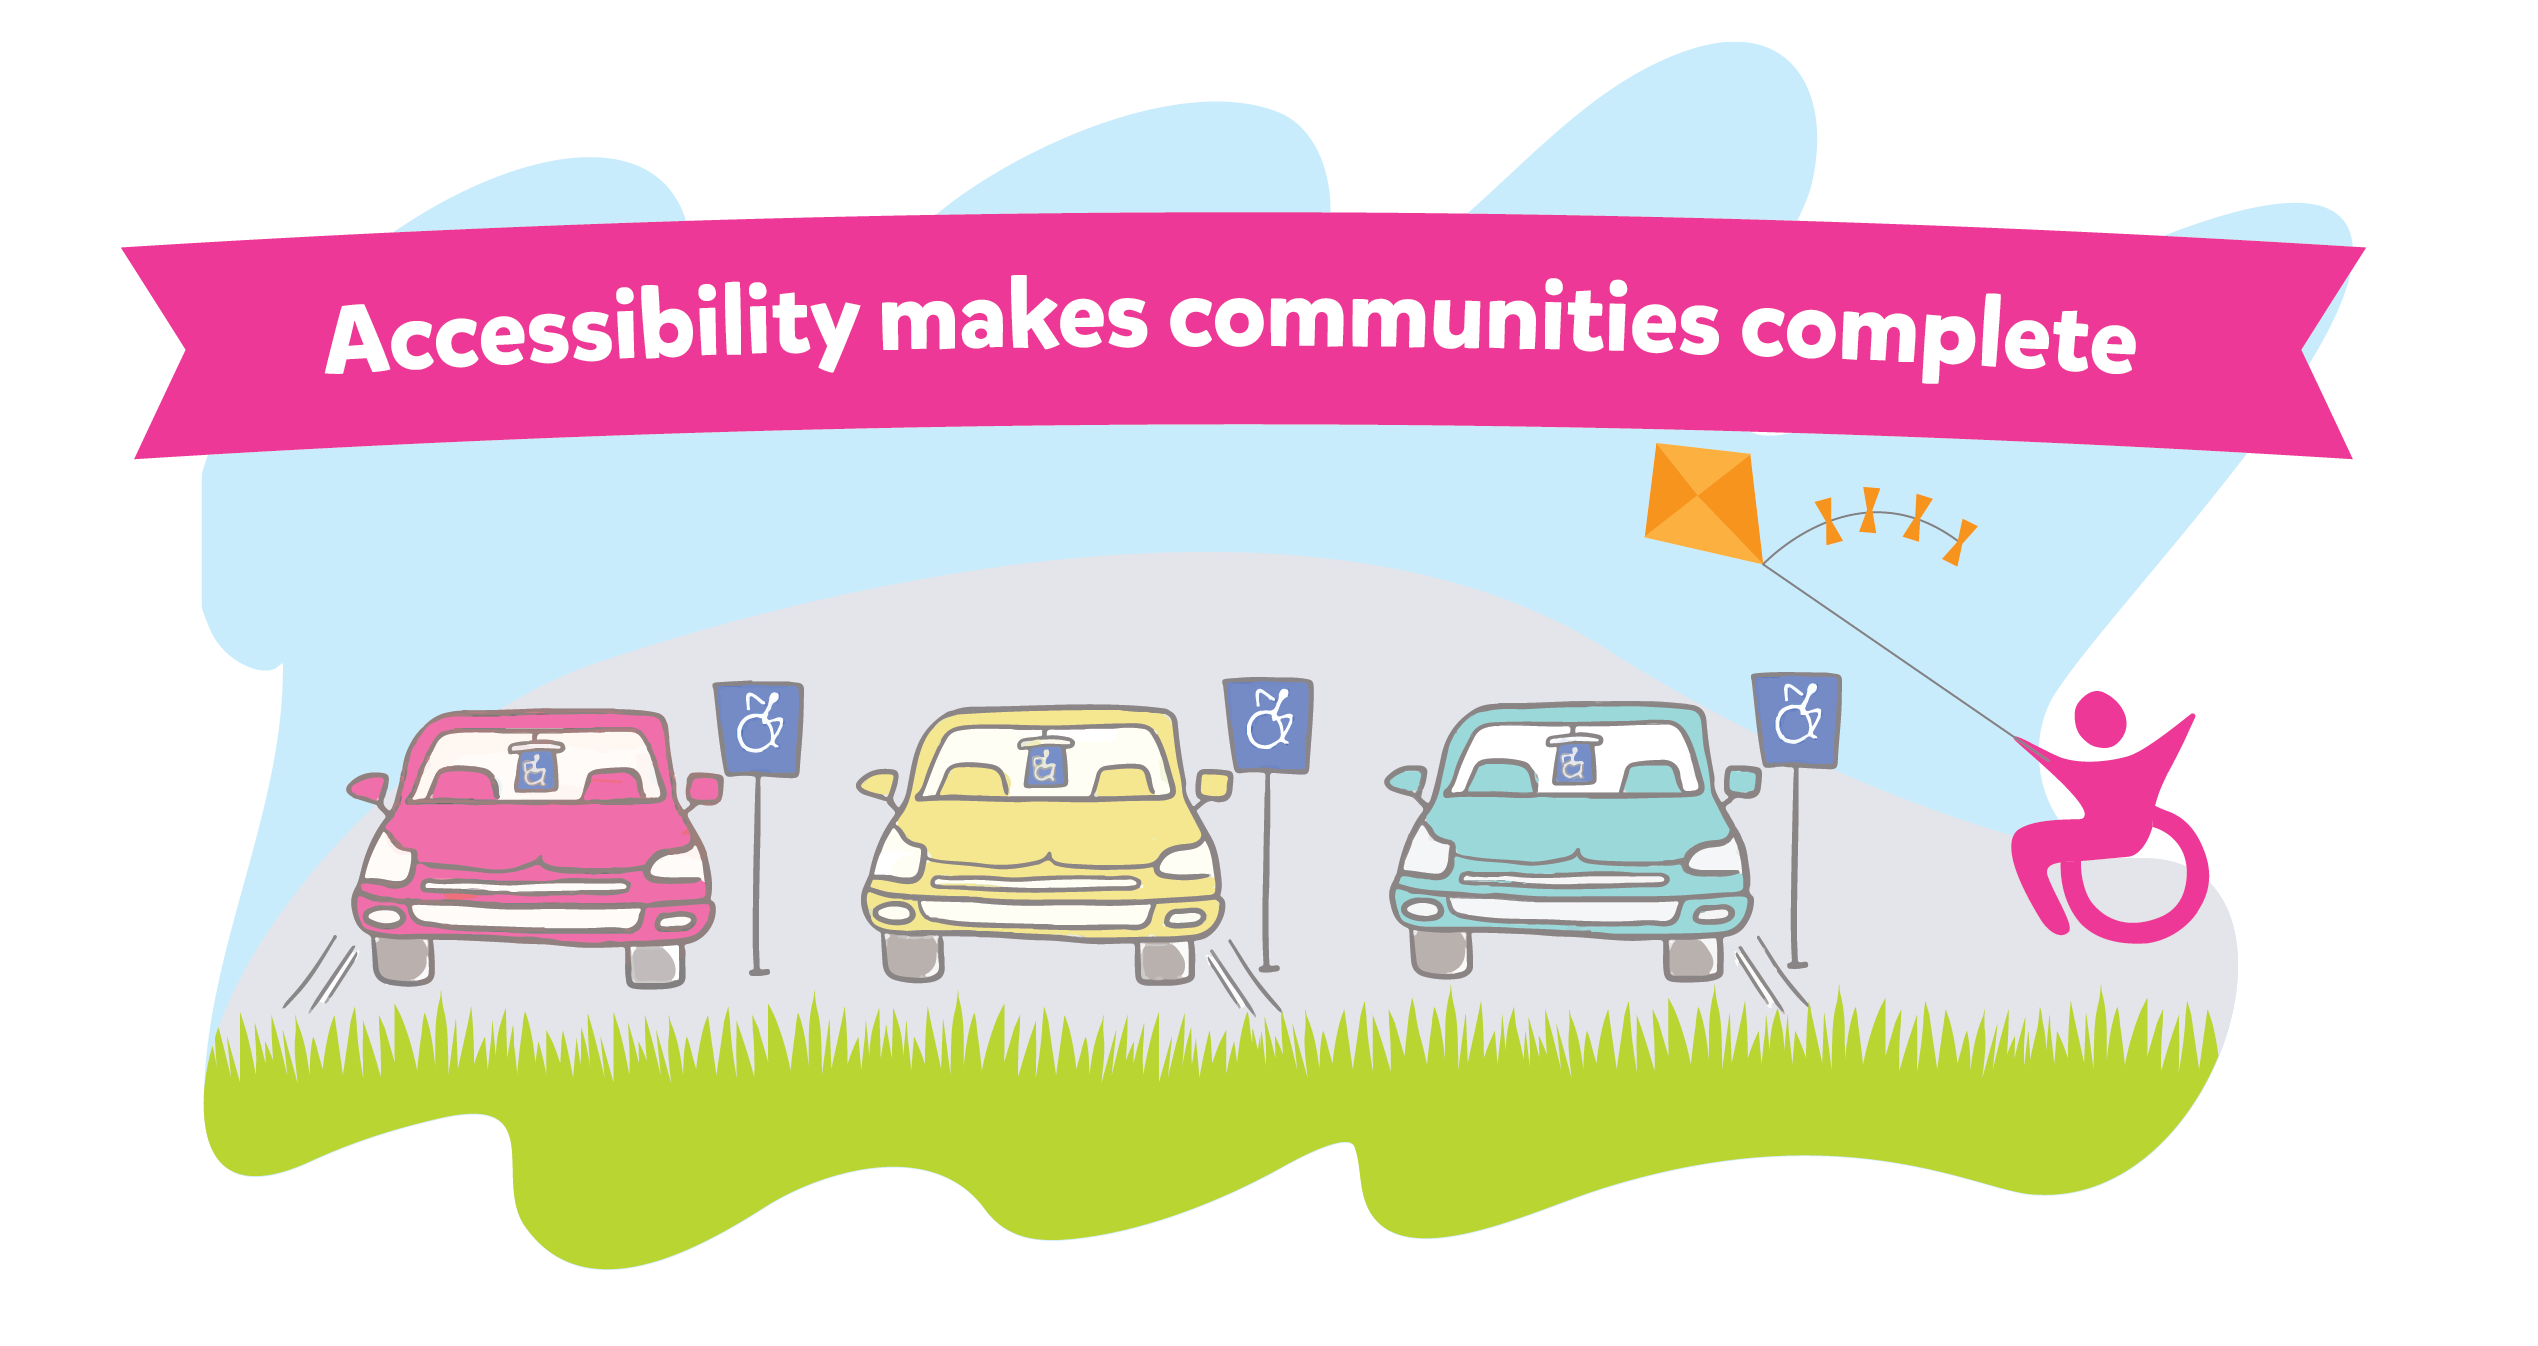 Accessibility makes communities complete